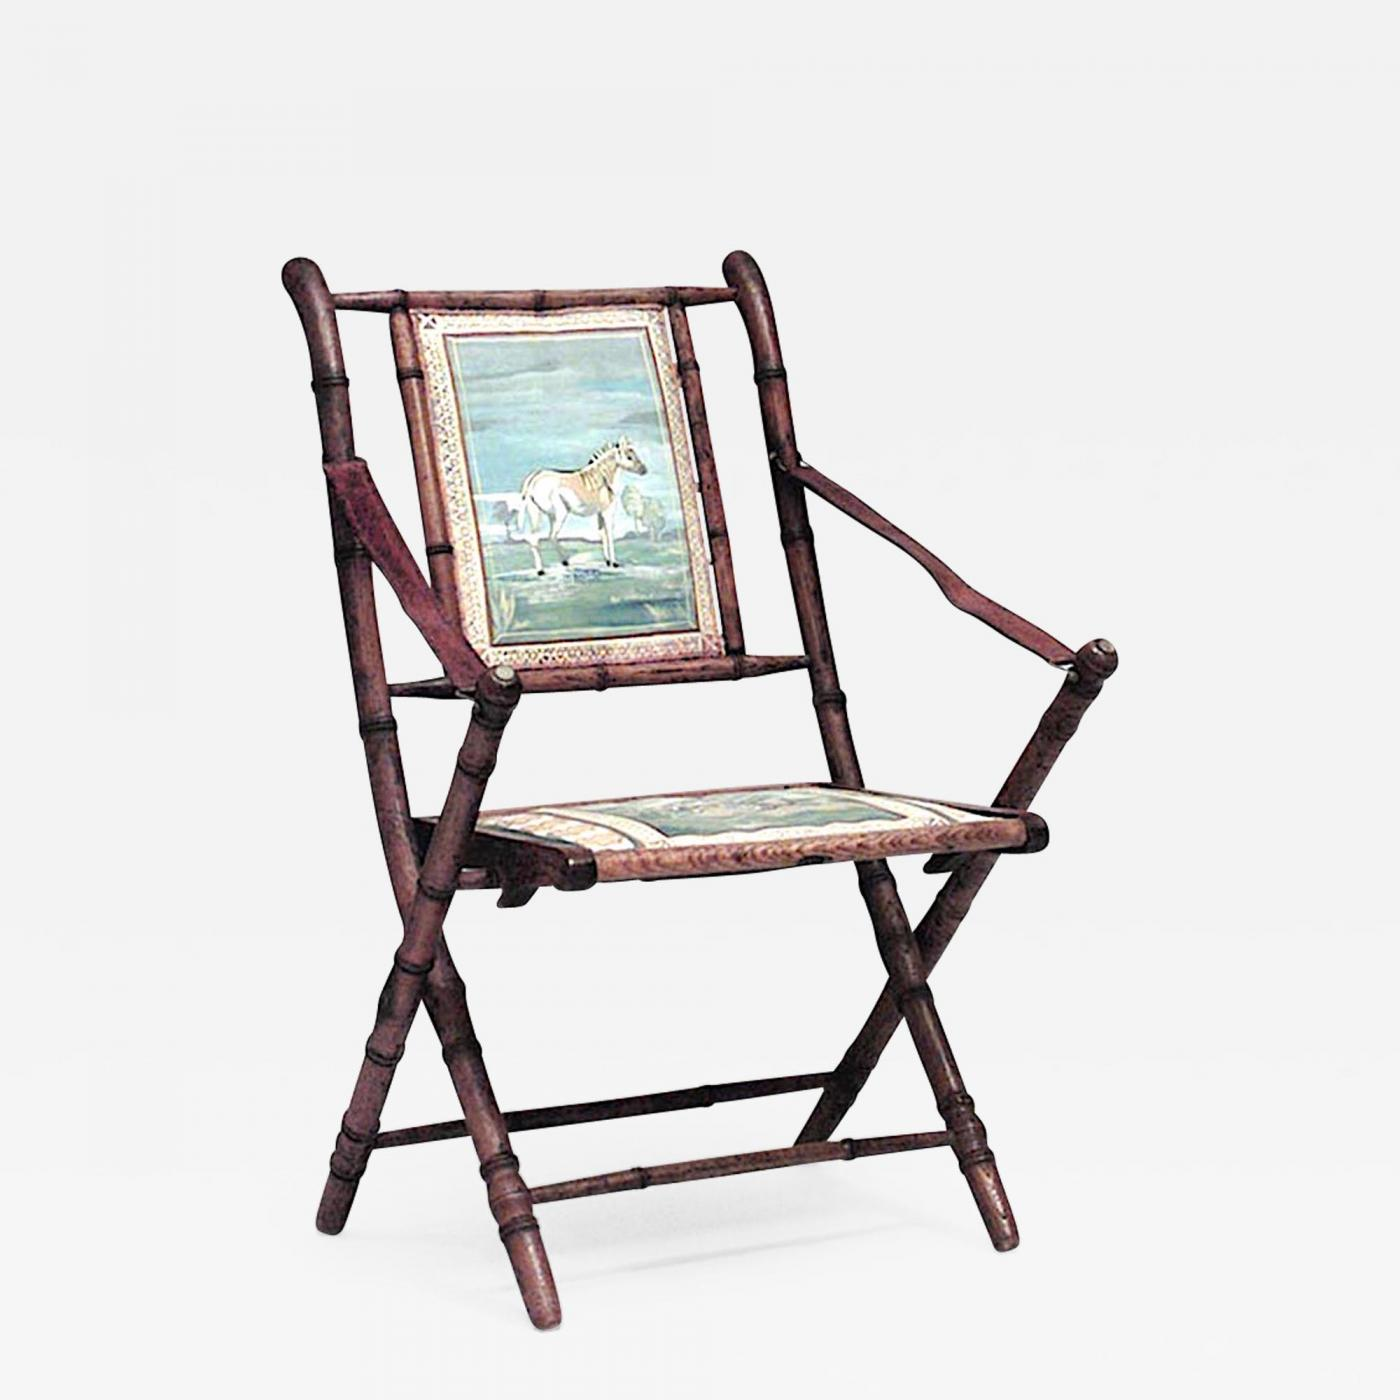 Super French Victorian Oak Faux Bamboo Campaign Design Folding Arm Chair Caraccident5 Cool Chair Designs And Ideas Caraccident5Info